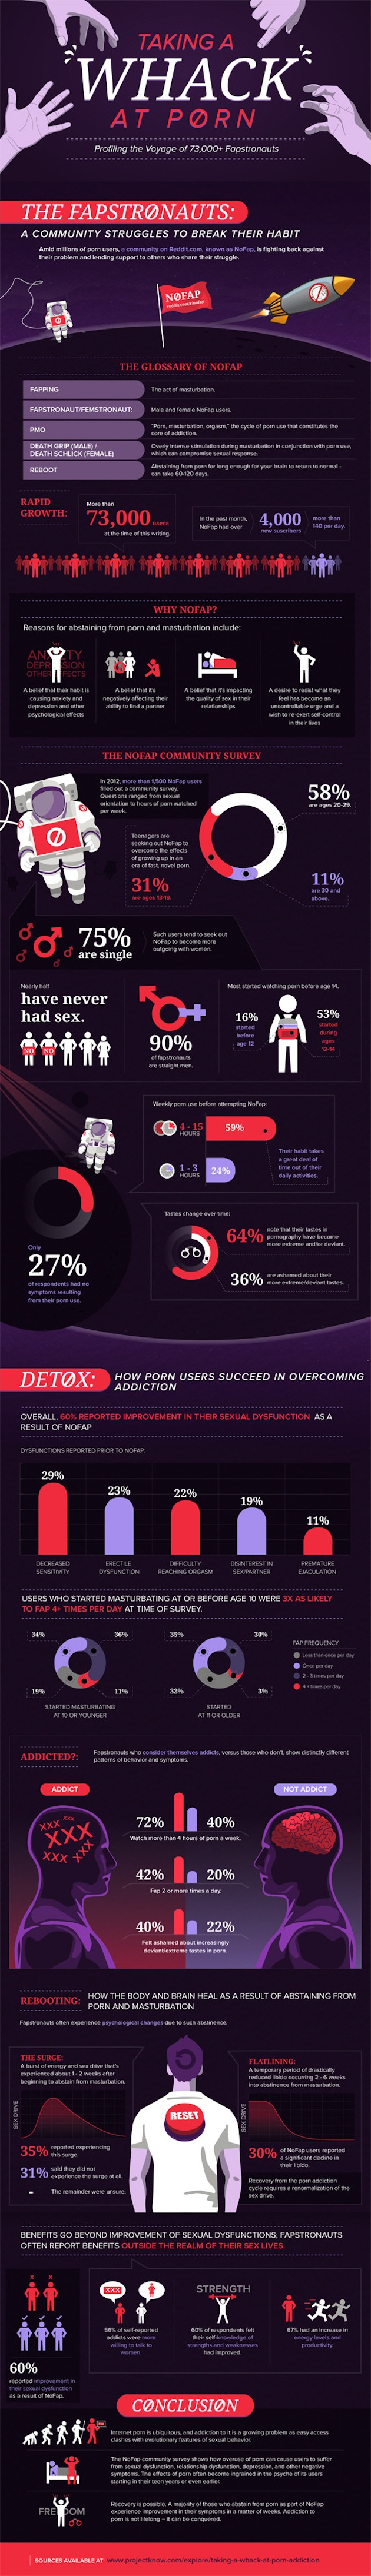 porn_addiction_infography